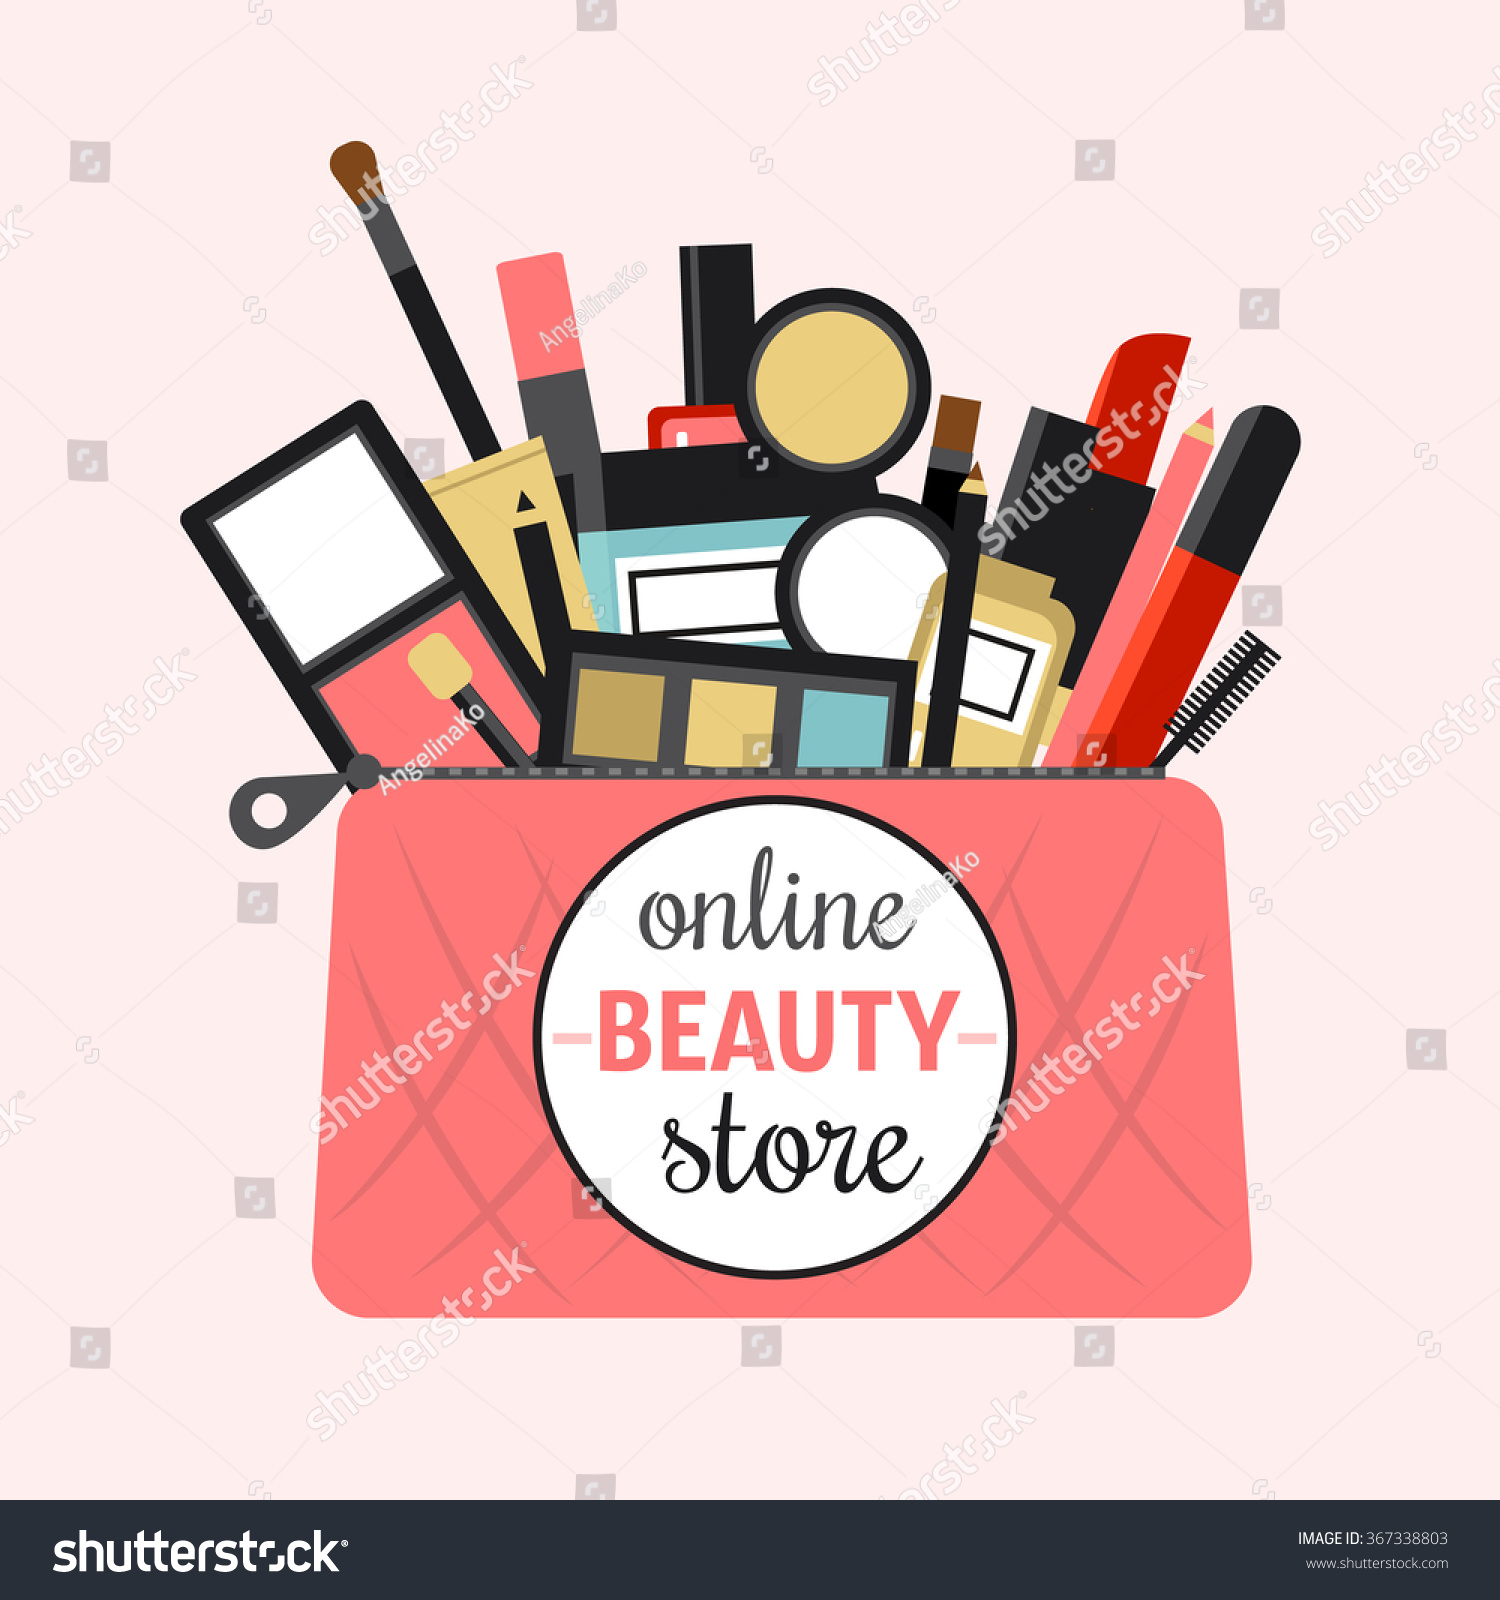 Beauty+Brands